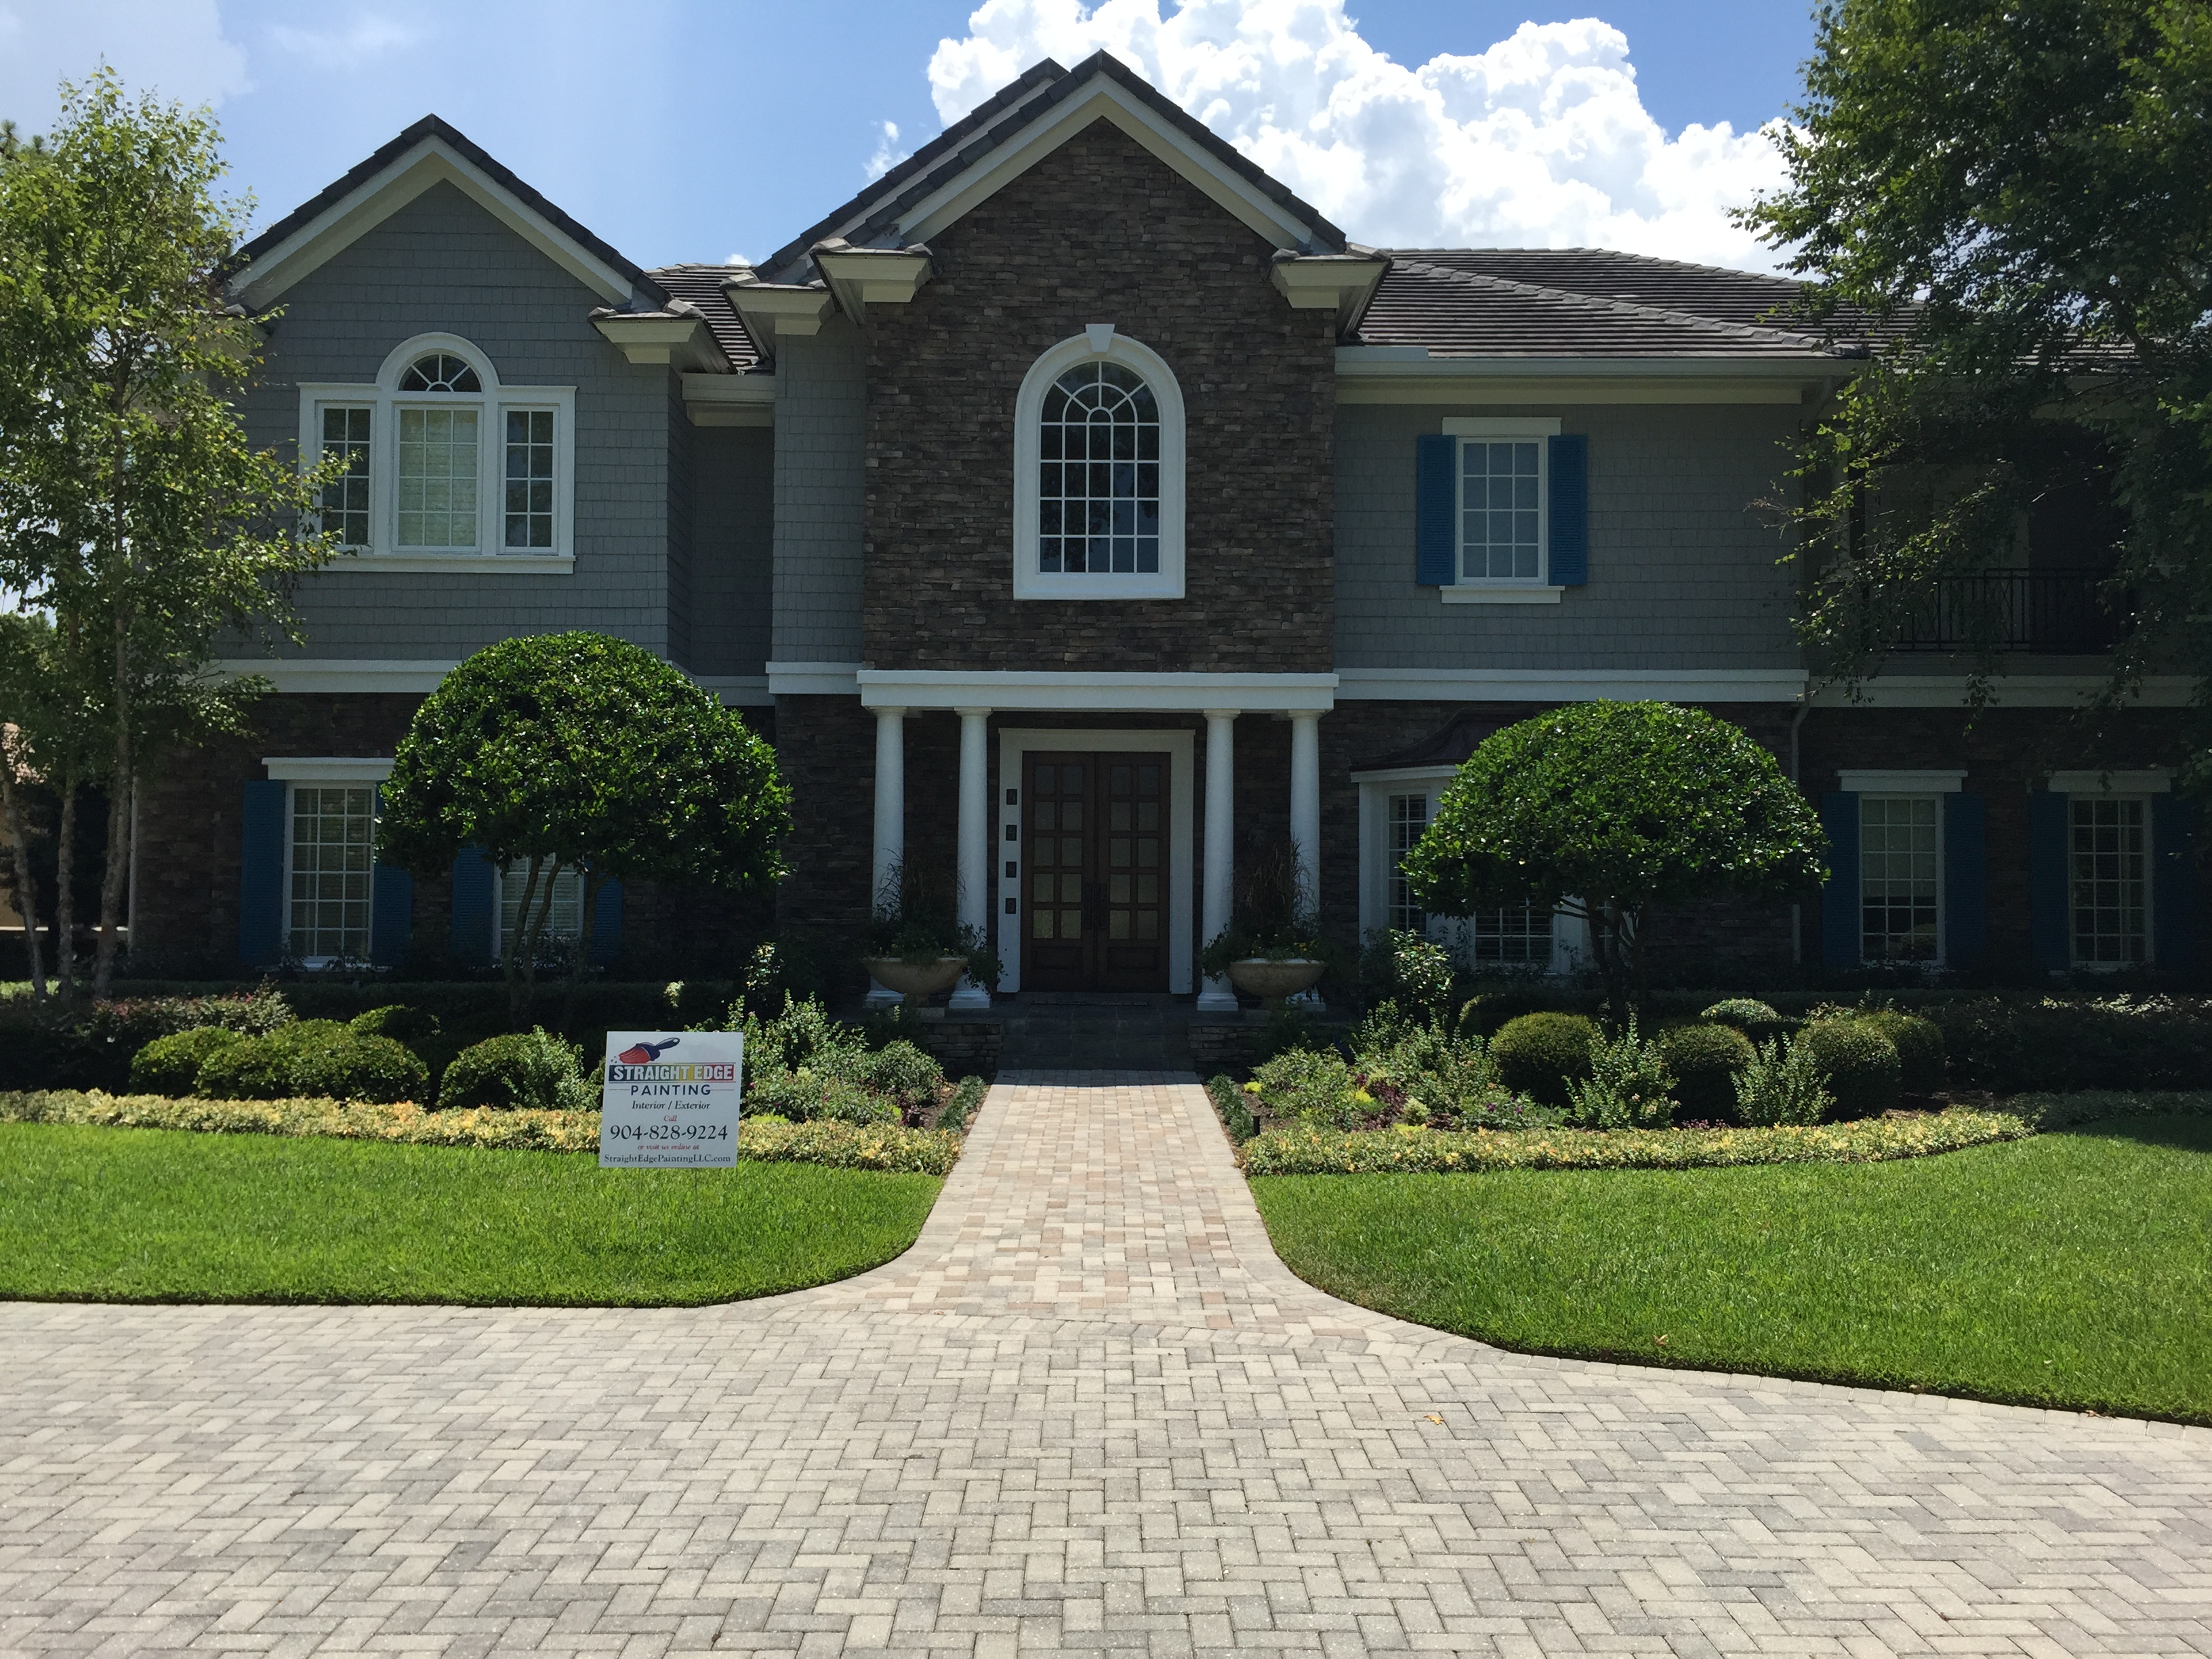 Top Quality Exterior Painting Services Straight Edge